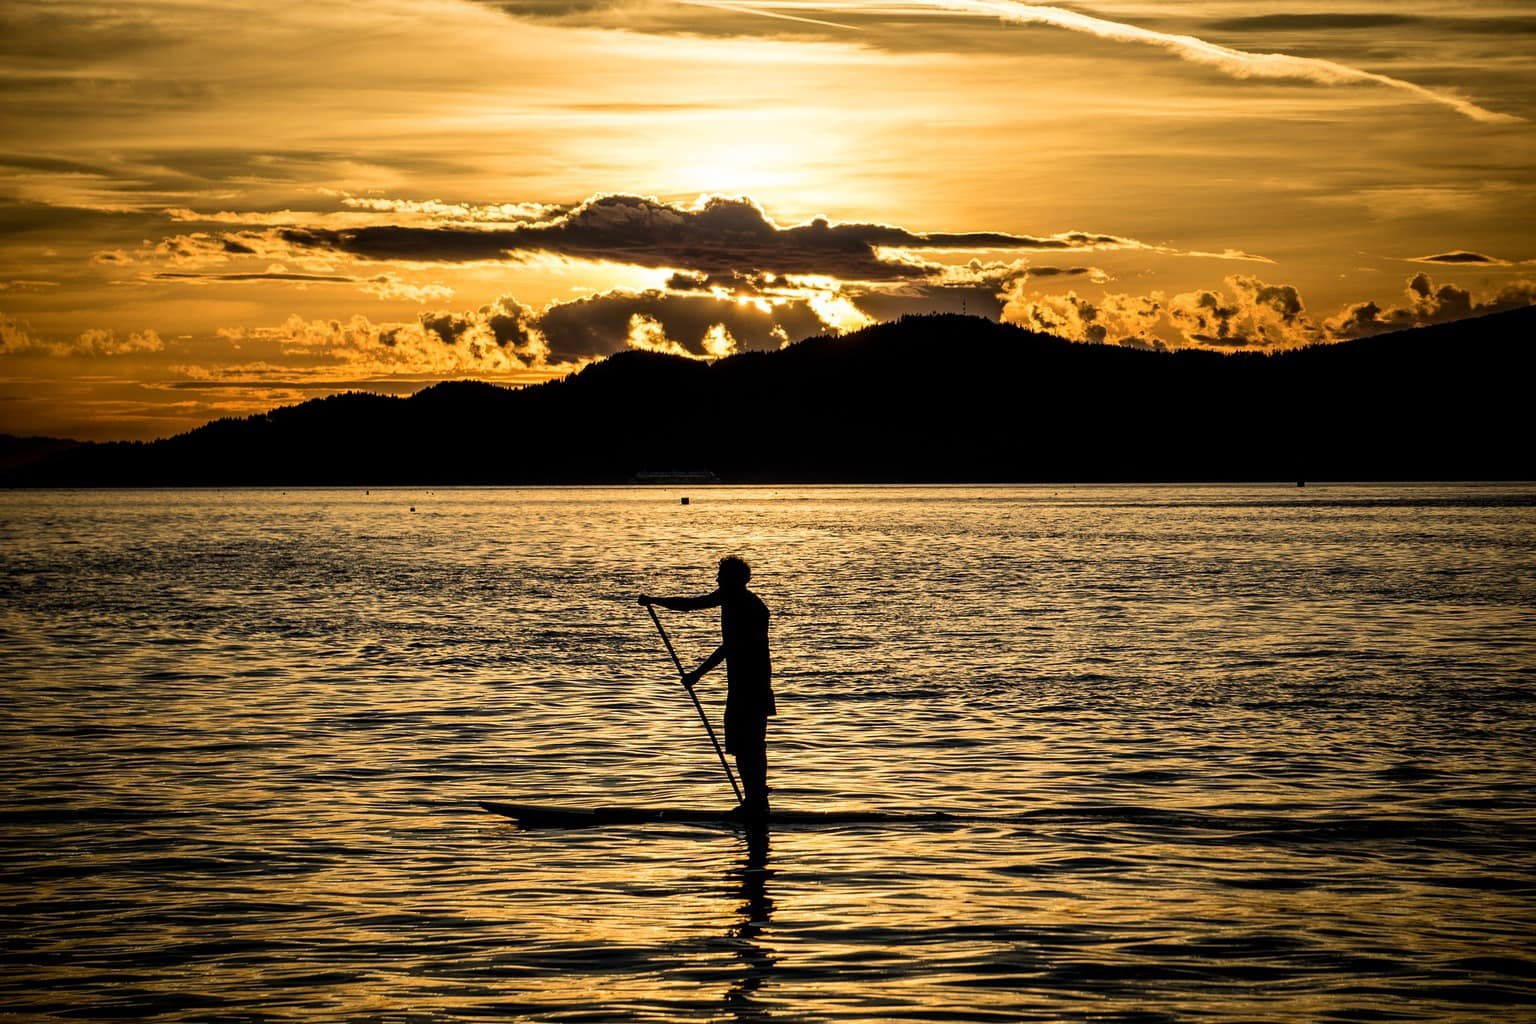 Standup paddle to burn off calories while traveling